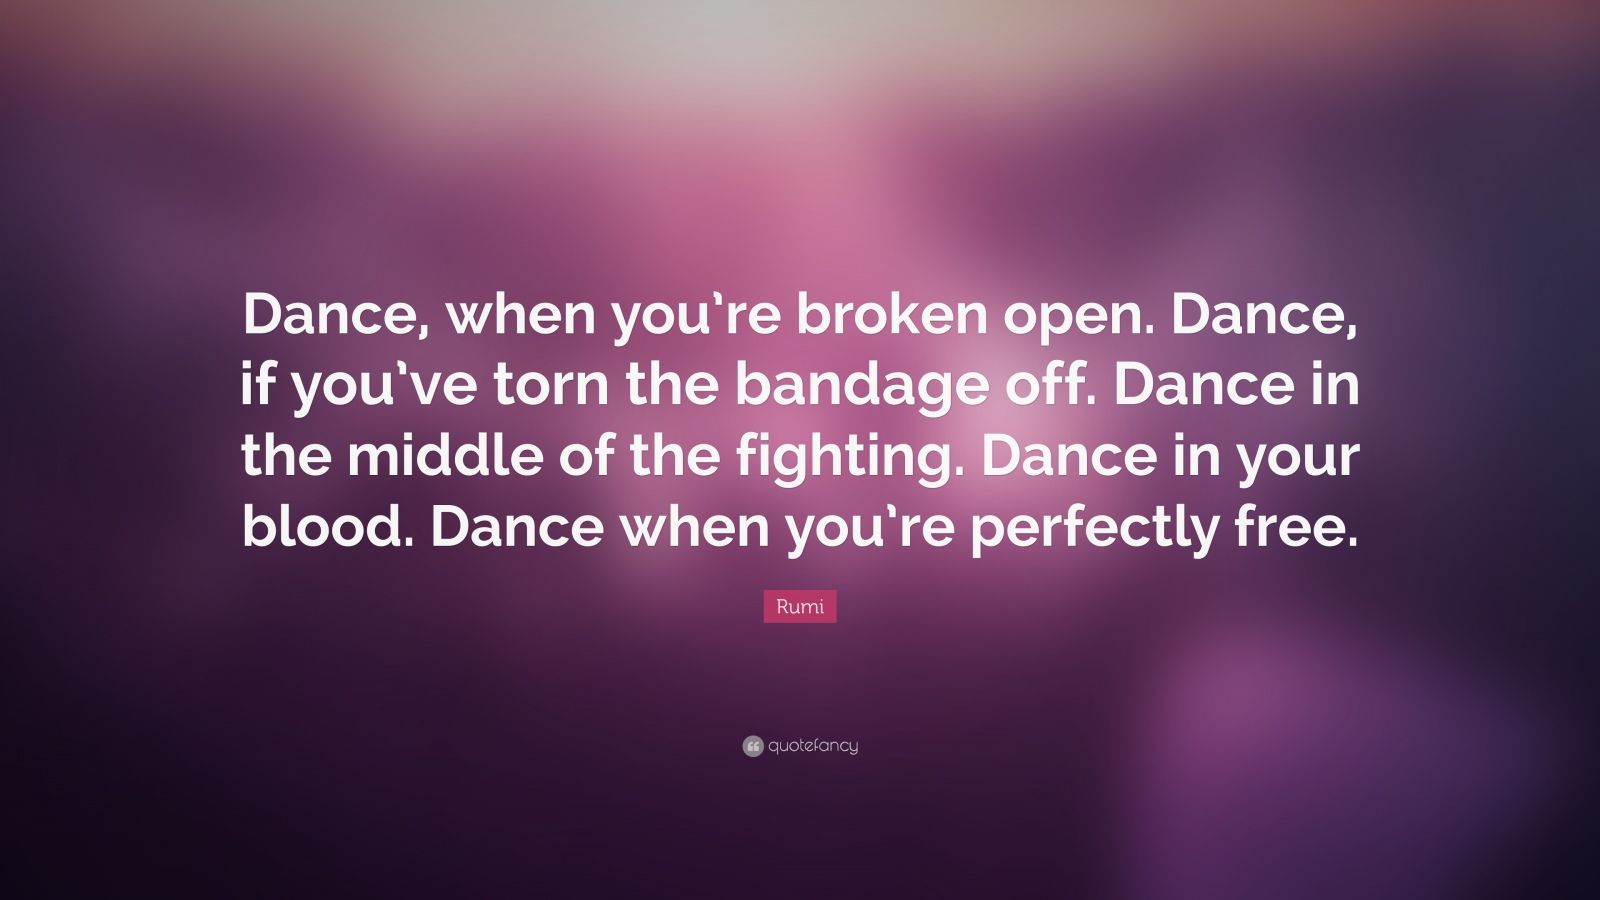 Motivational Quotes Computer Backgrounds Wallpapers Rumi Quote Dance When You Re Broken Open Dance If You